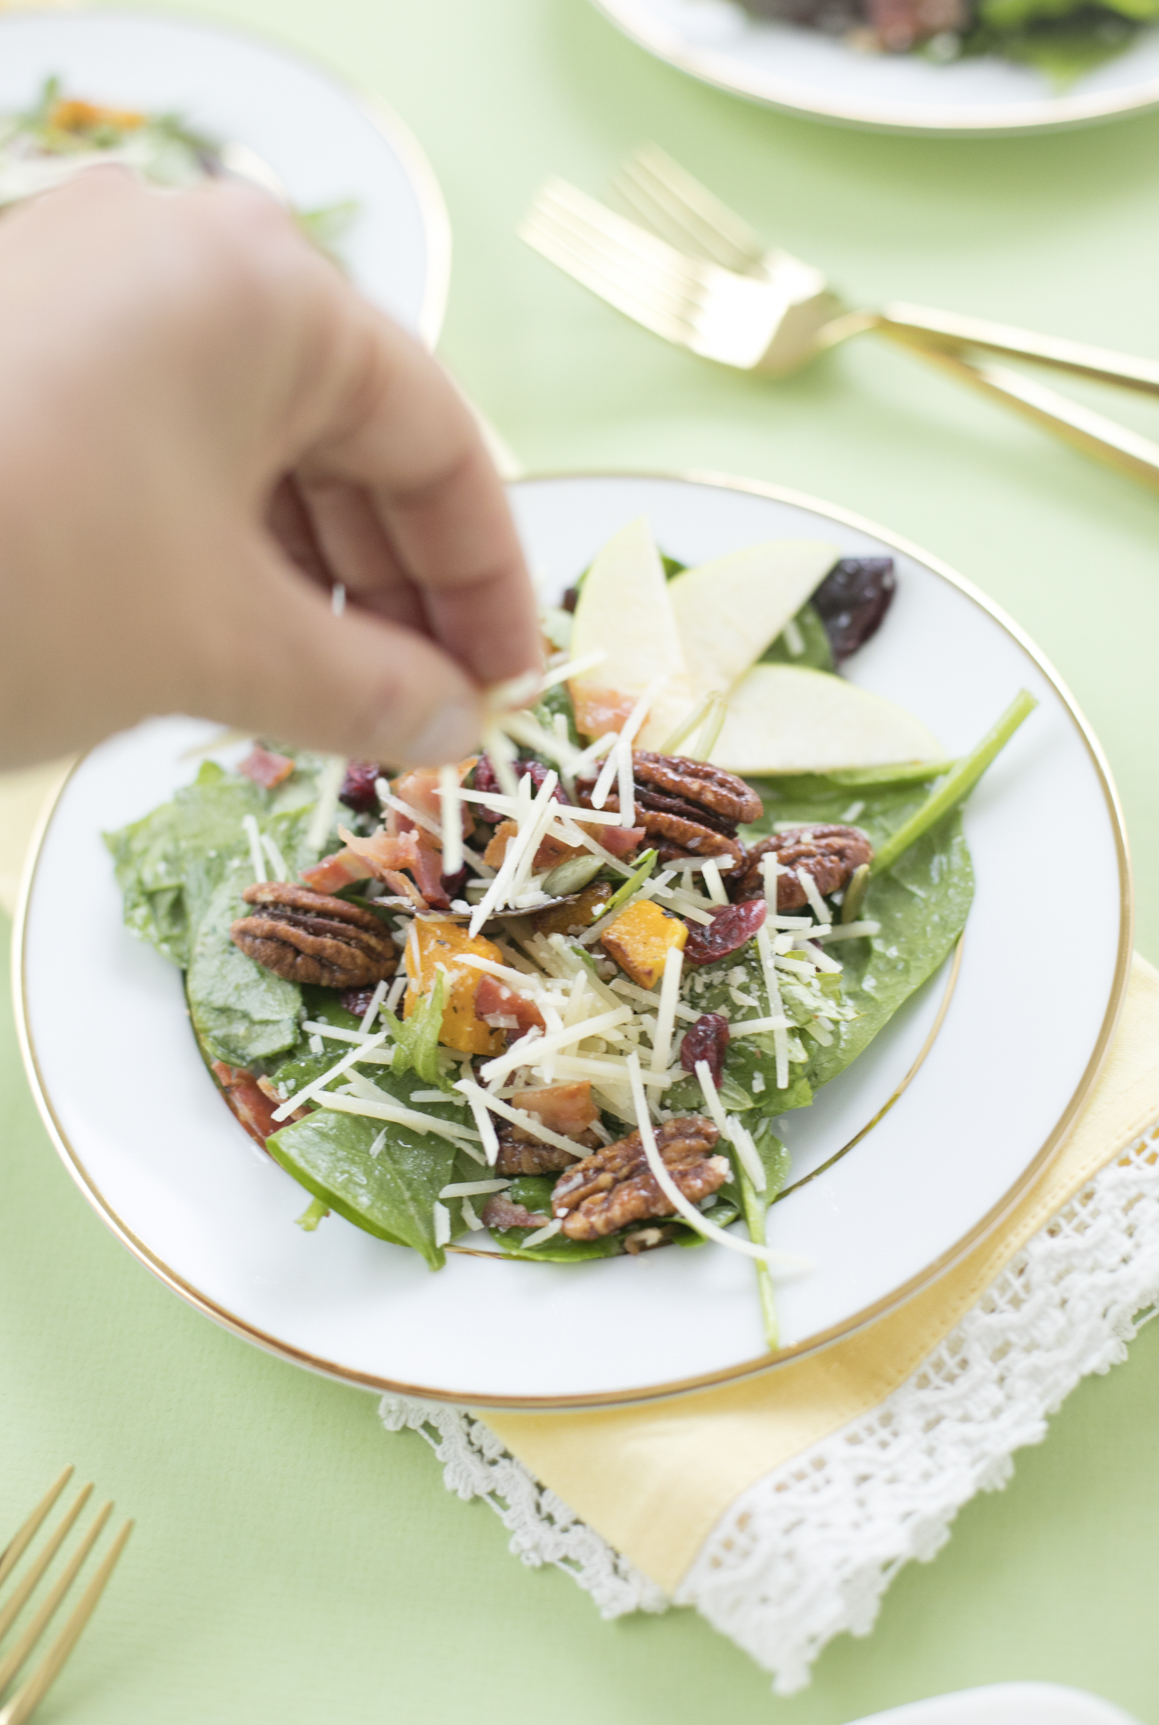 Fall Inspired Salad Recipe with Sargento Cheese